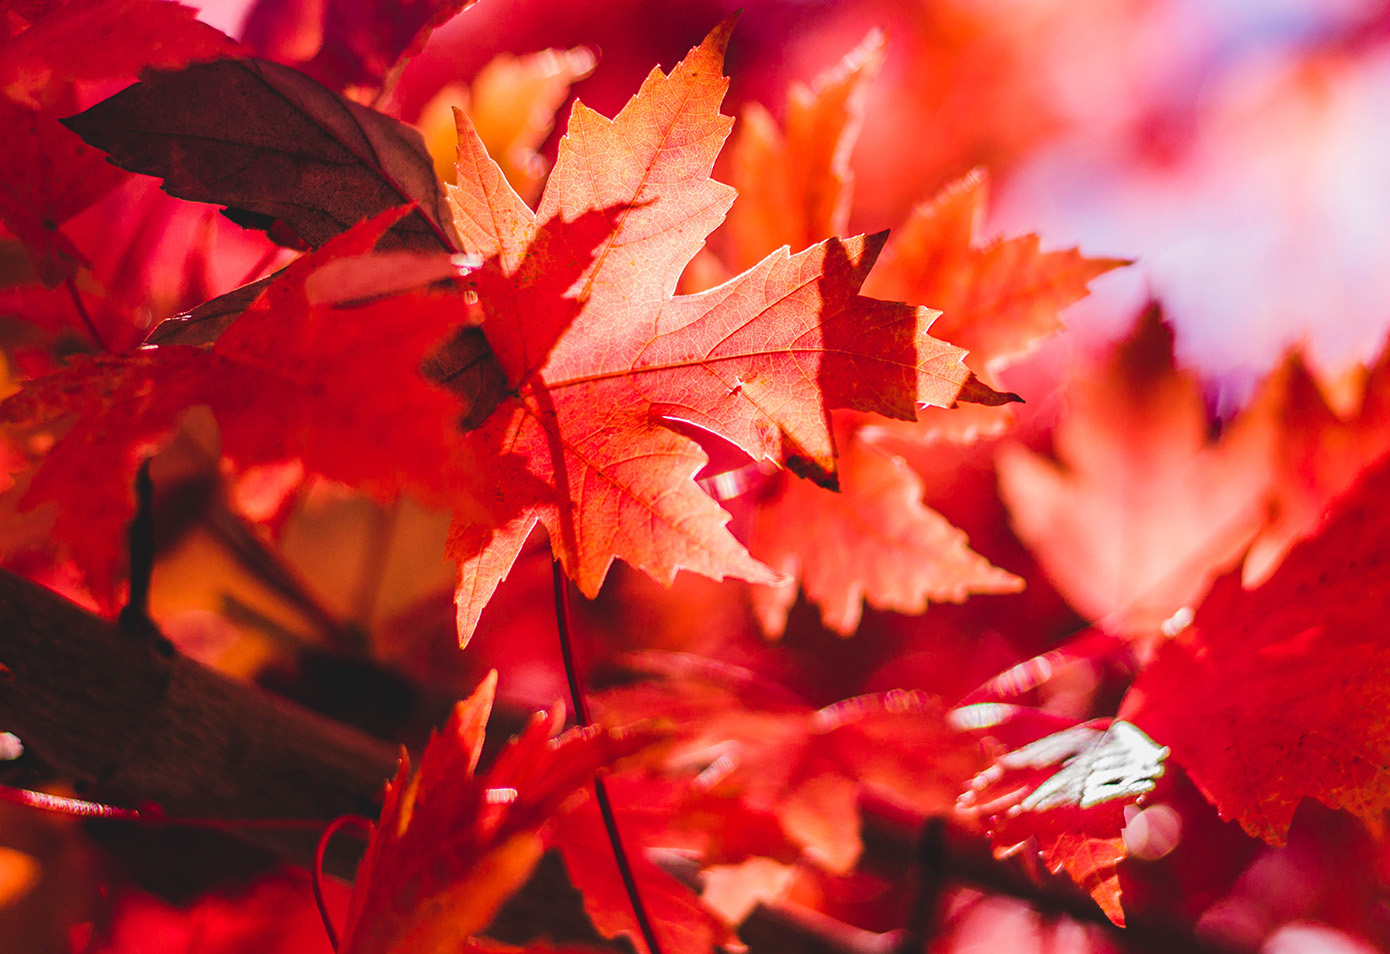 Autumn activities and events in Whistler, BC